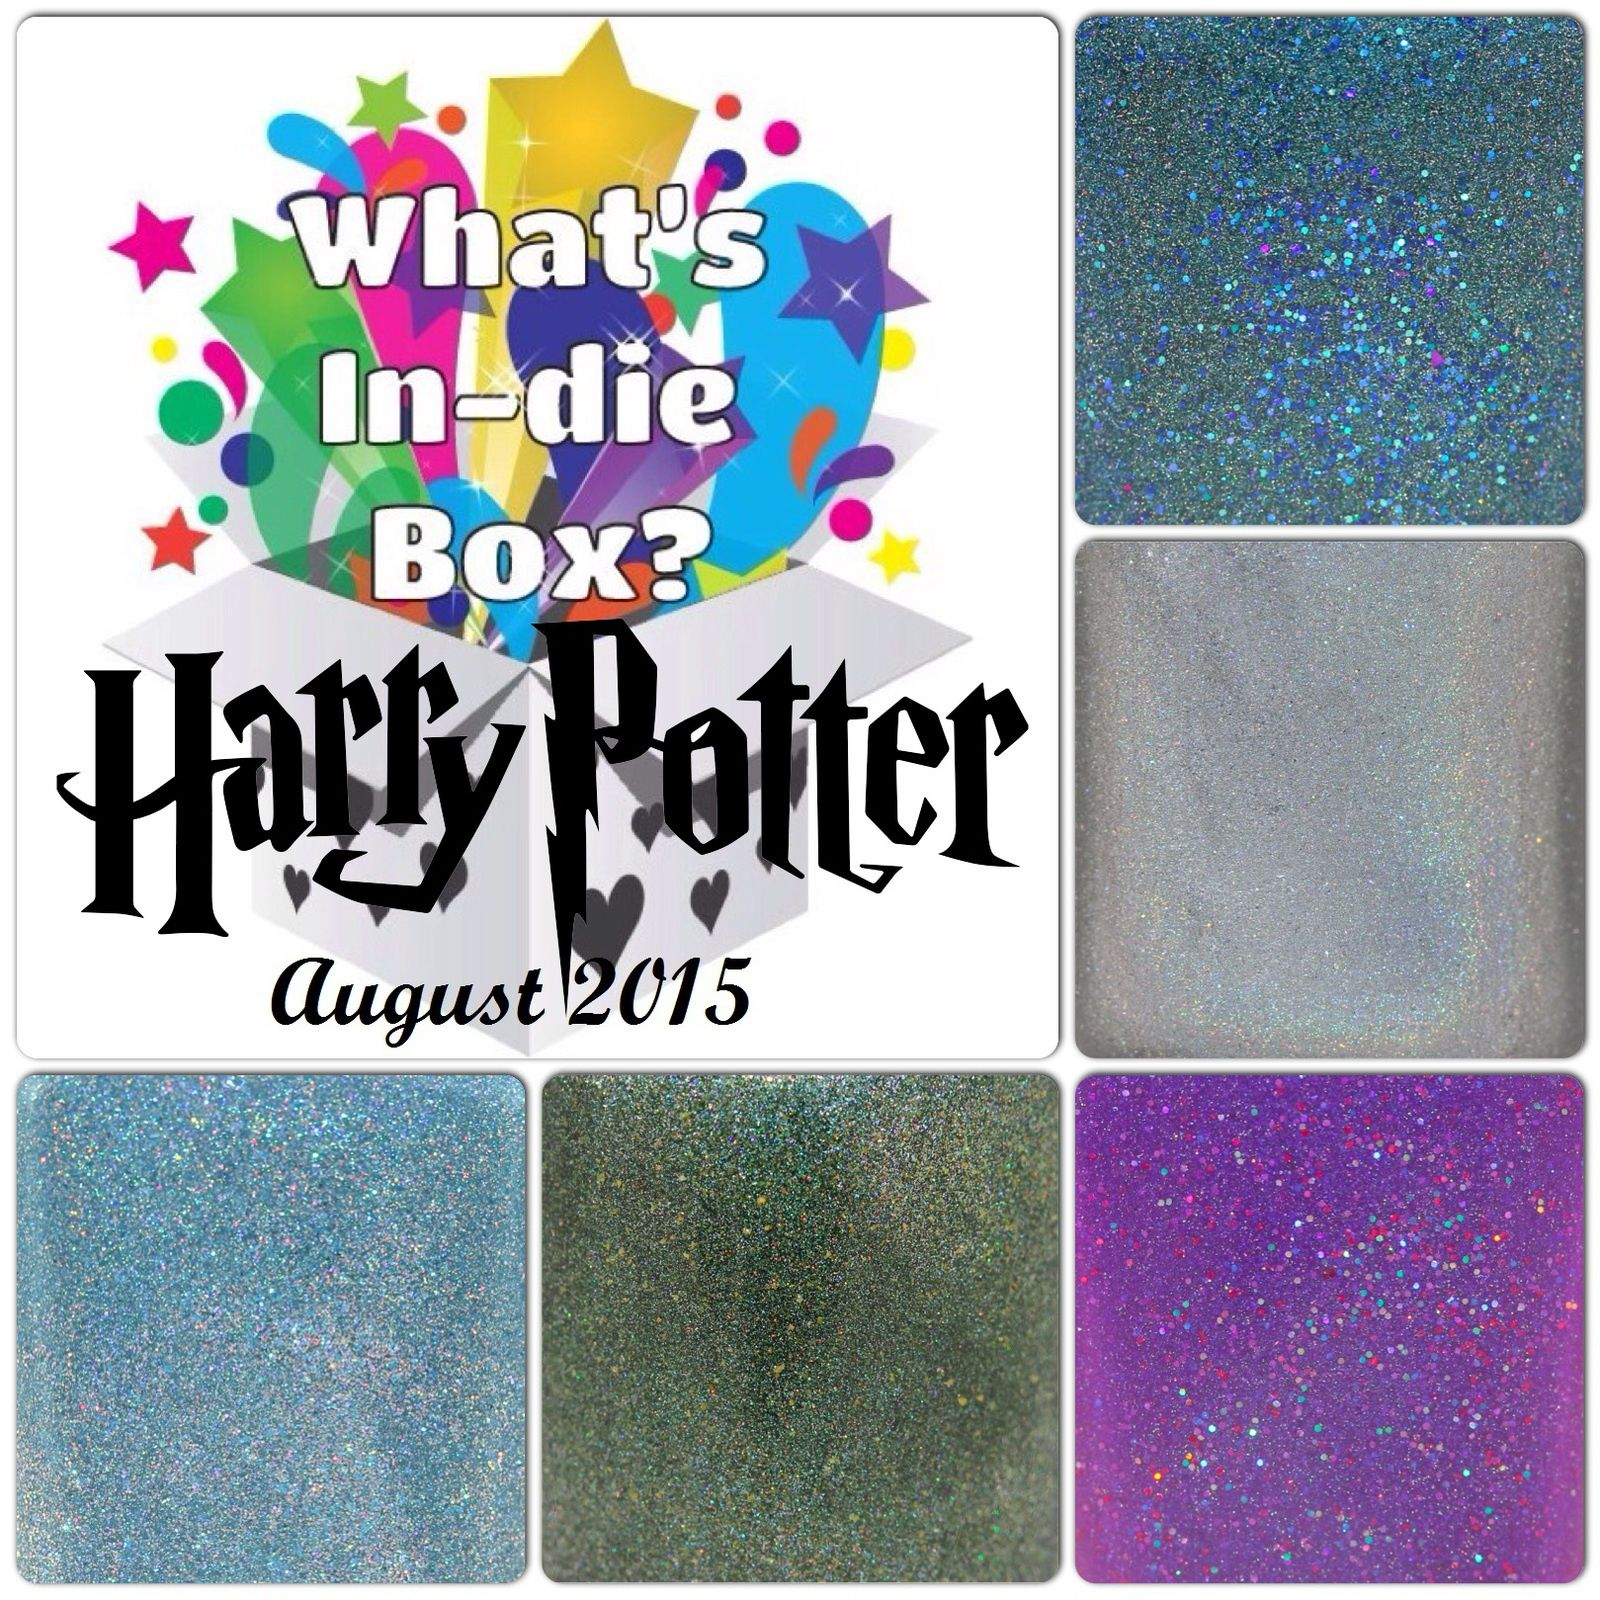 What's Indie Box - August 2015 - Harry Potter